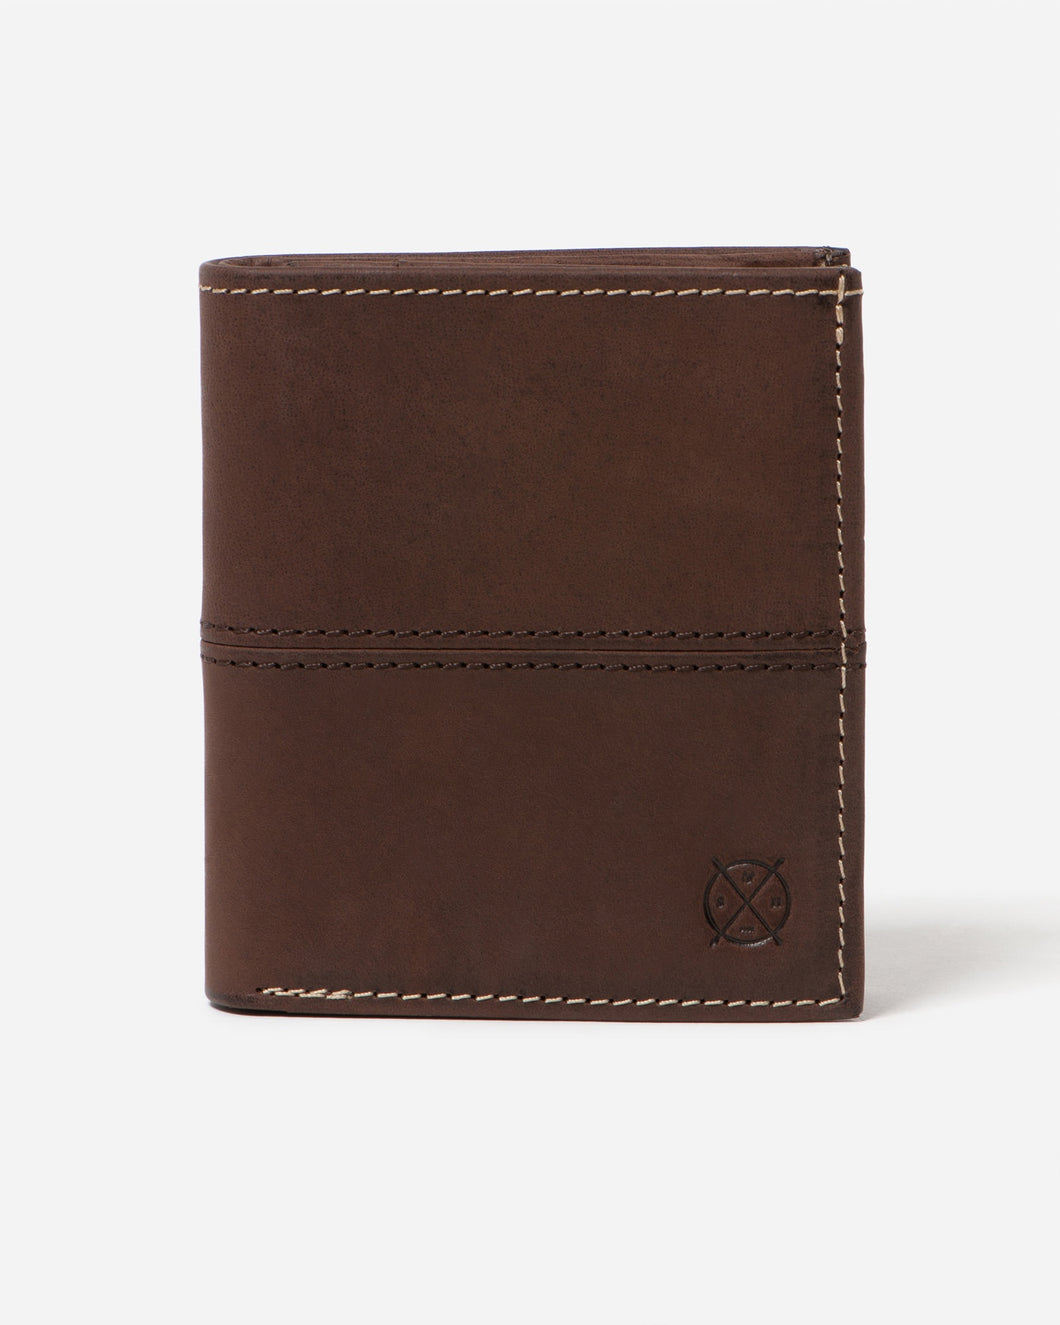 STITCH & HIDE - BERNARD WALLET BROWN